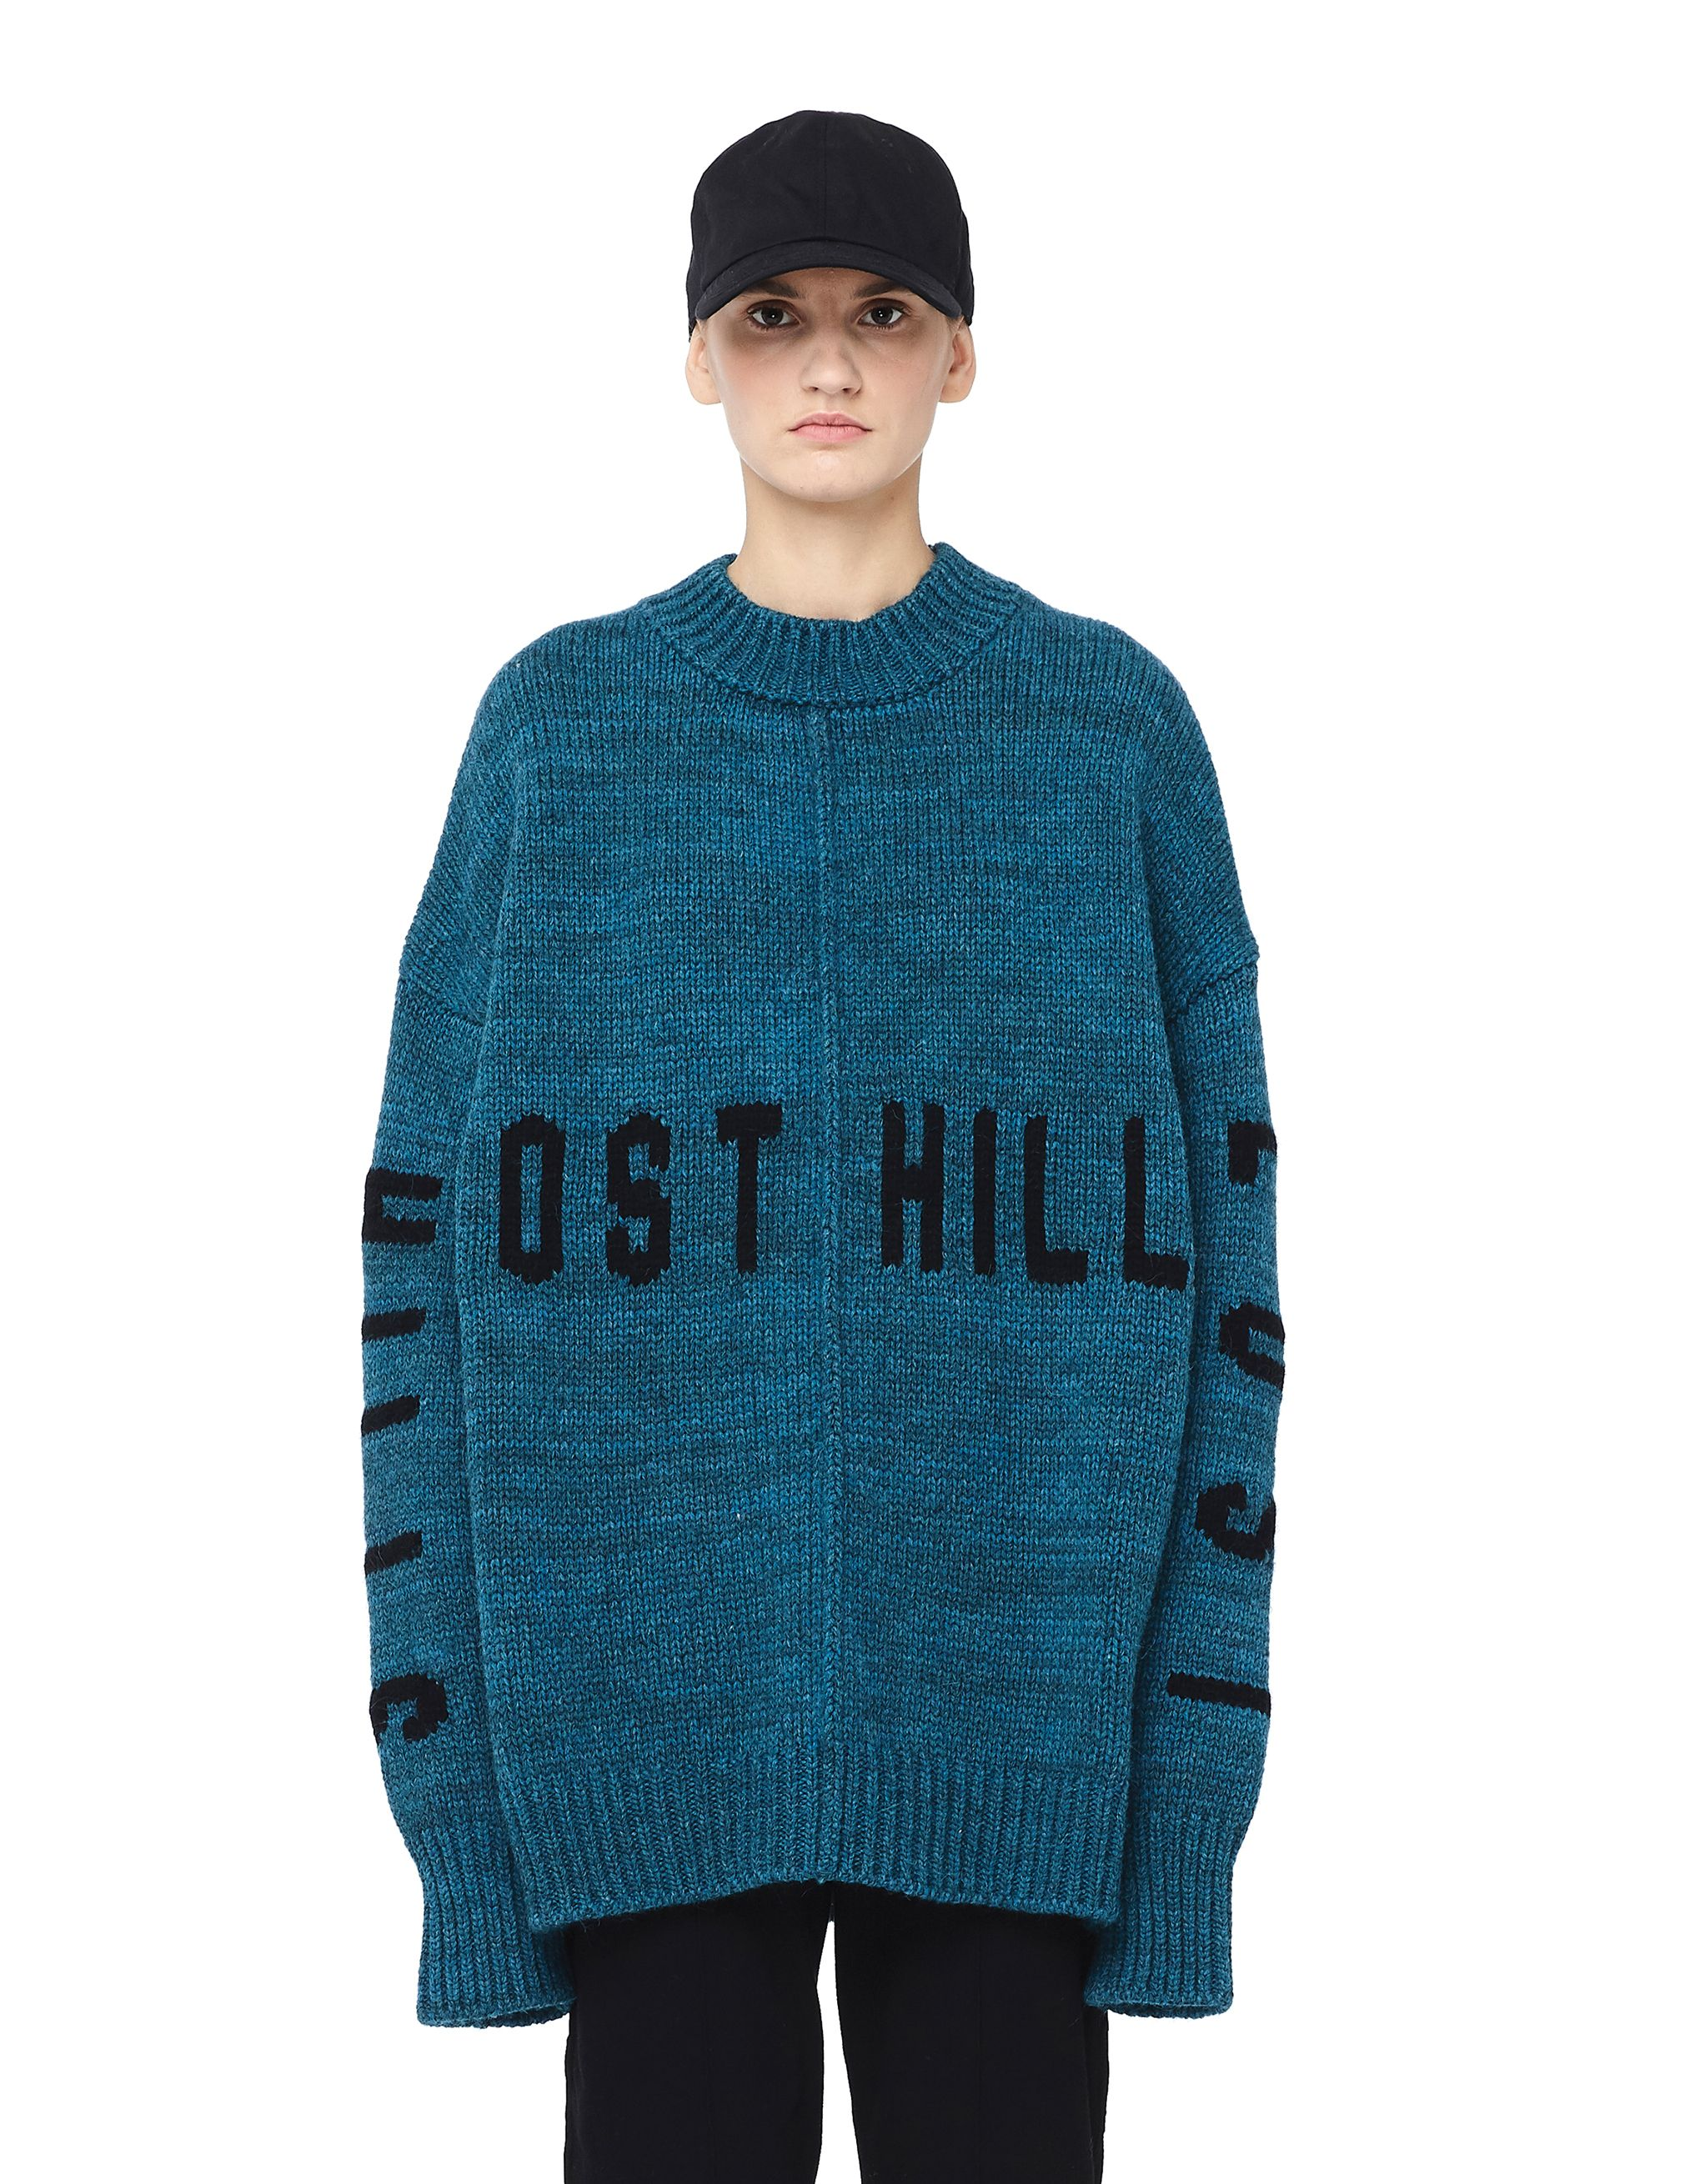 YEEZY 'LOST HILLS' WOOL SWEATER. #yeezy #cloth # | Clothing